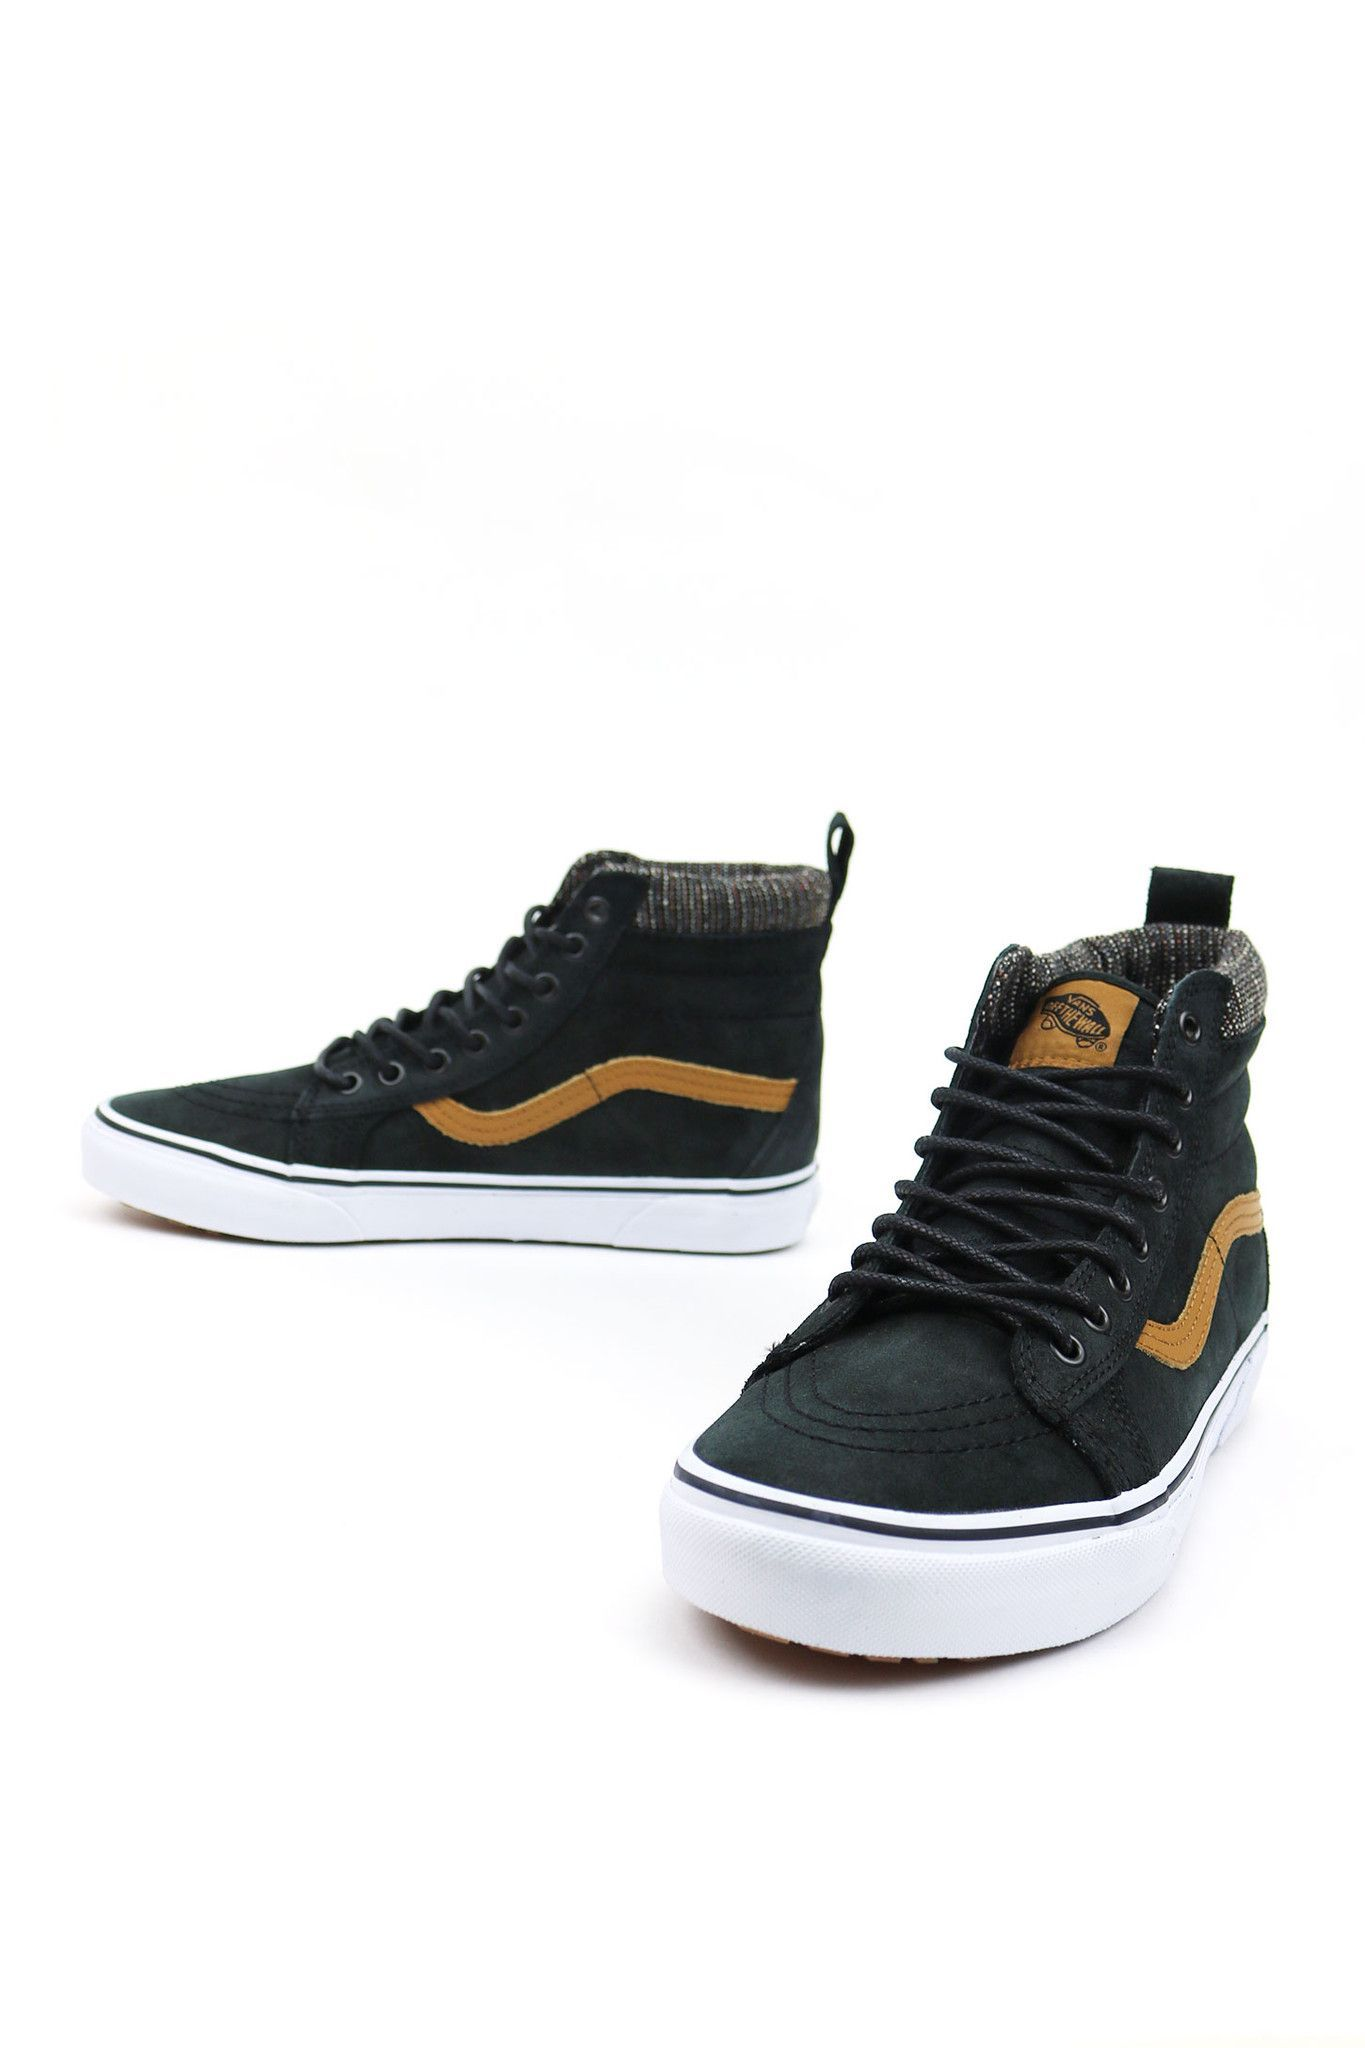 f024879c416fa3 Vans The Sk8-Hi MTE revamps the legendary Vans high top with additions  designed for the elements. Premium Scotchgard®-treated leather and Suede  uppers